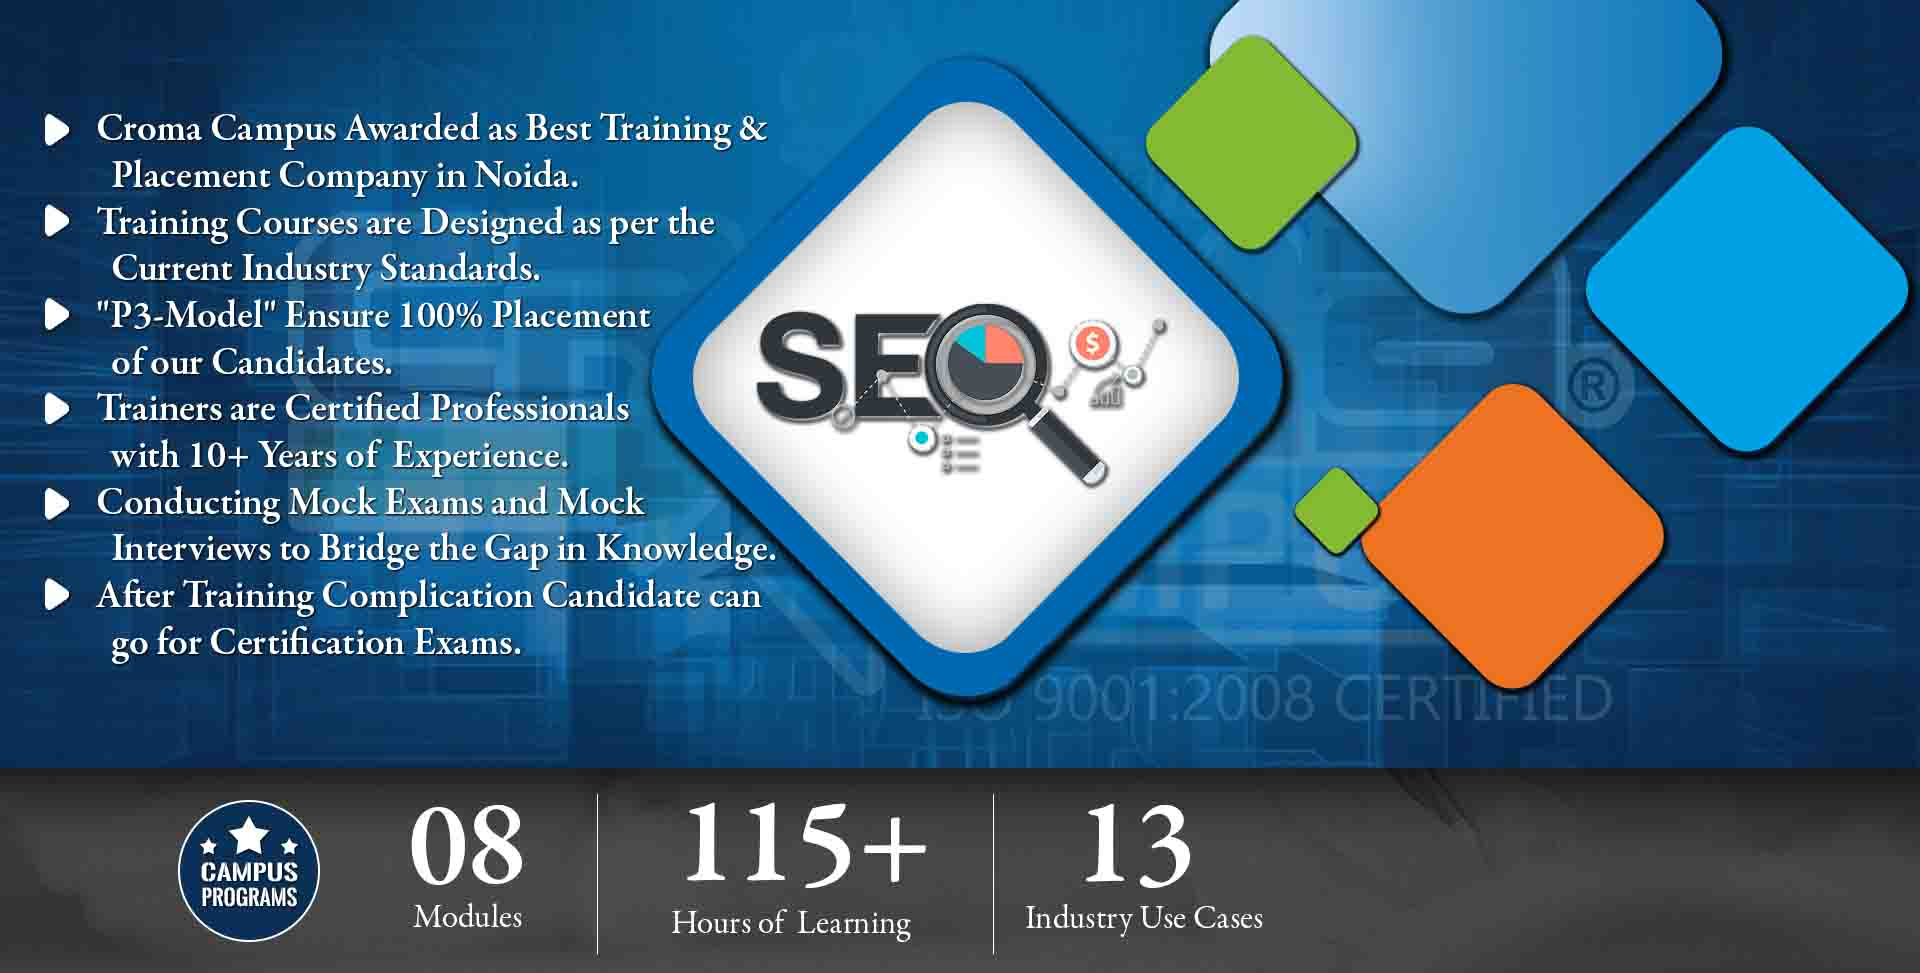 SEO Training in Delhi NCR- Croma Campus